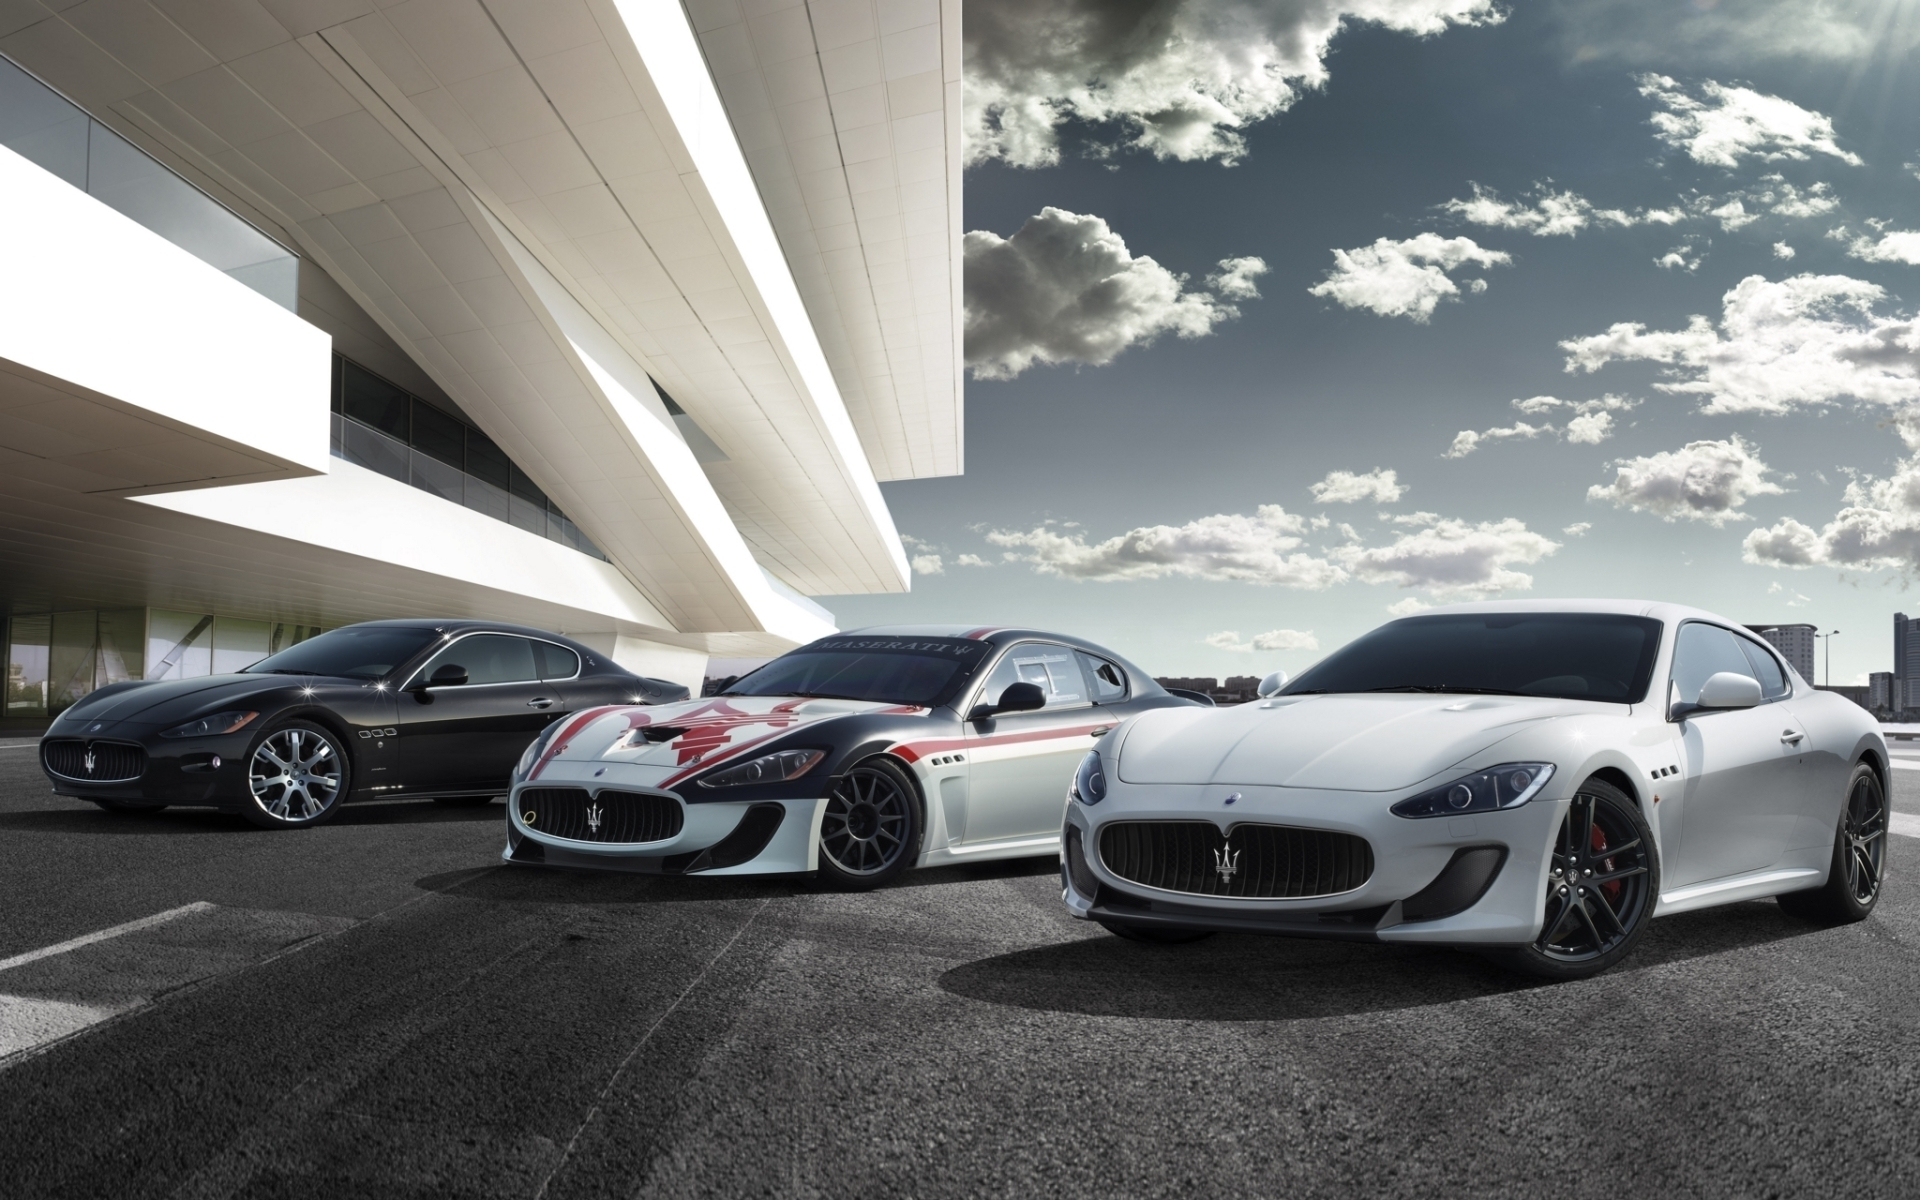 Maserati Wallpaper Widescreen Amazing Cars 1083 Wallpaper Cool 1920x1200